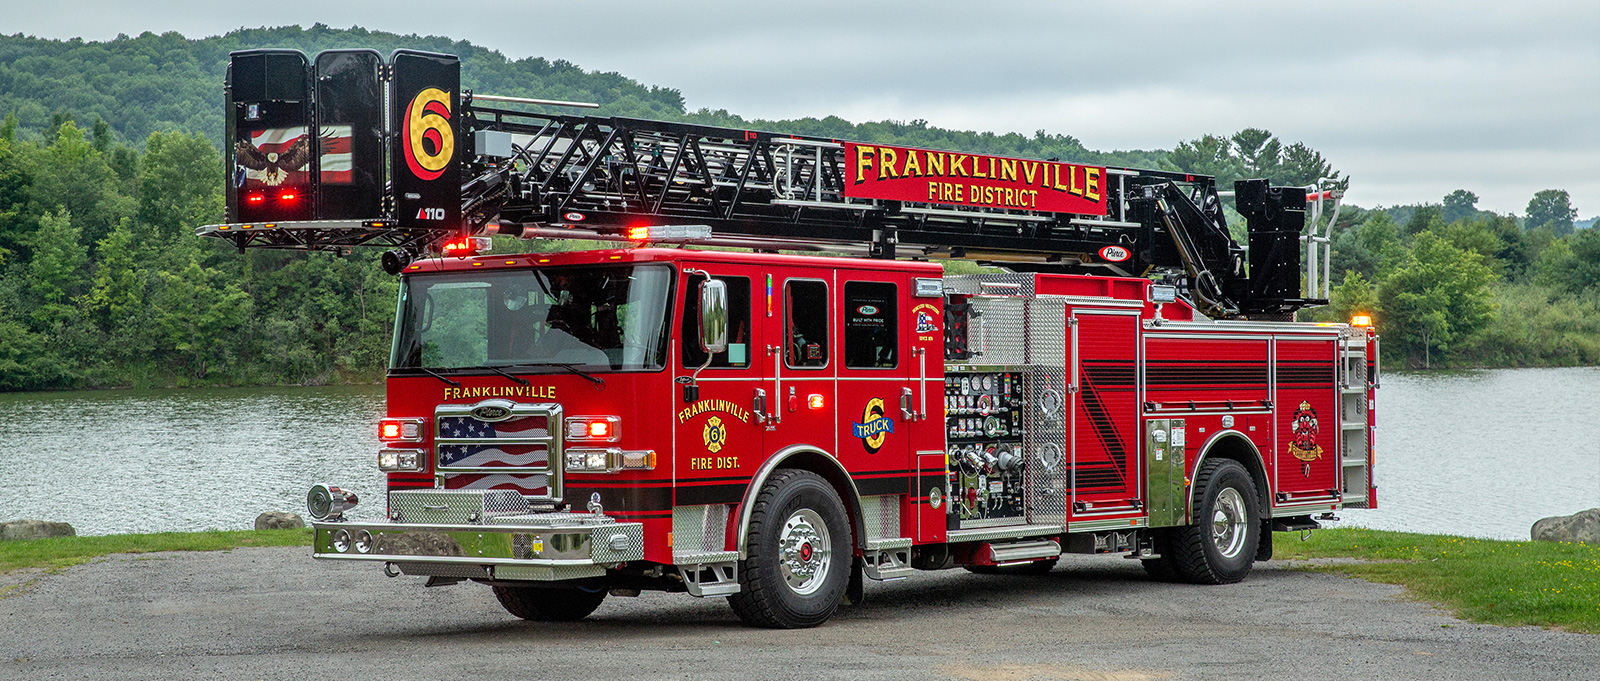 Aerial platform ladder trucks offer a safer workplace and evacuation method during rescue operations.